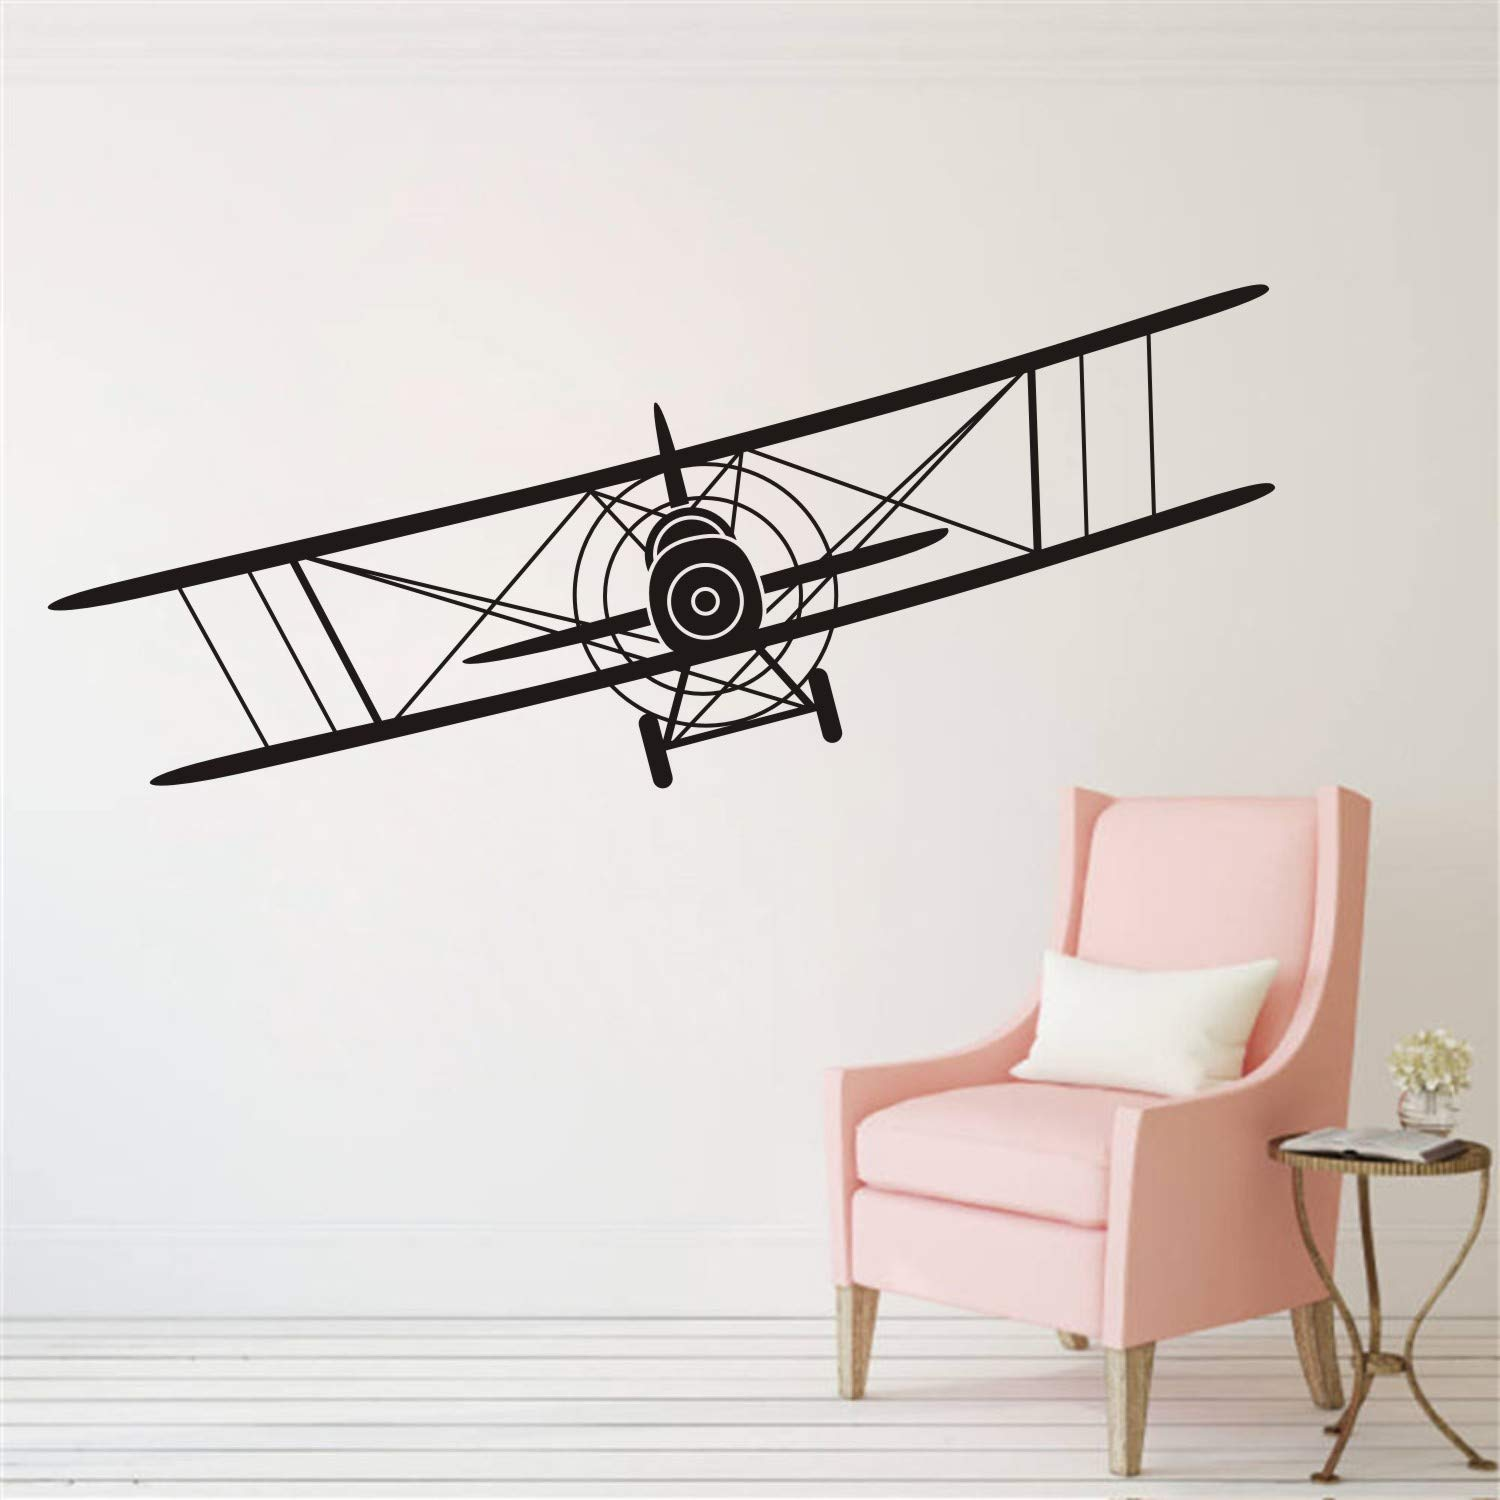 Makeyes Biplane Airplane Wall Decal Vinyl Sticker Decor for Kids Boys Nursery Living Room Design Bedroom Decoration DIY YMX53 (Black, 57X23CM)